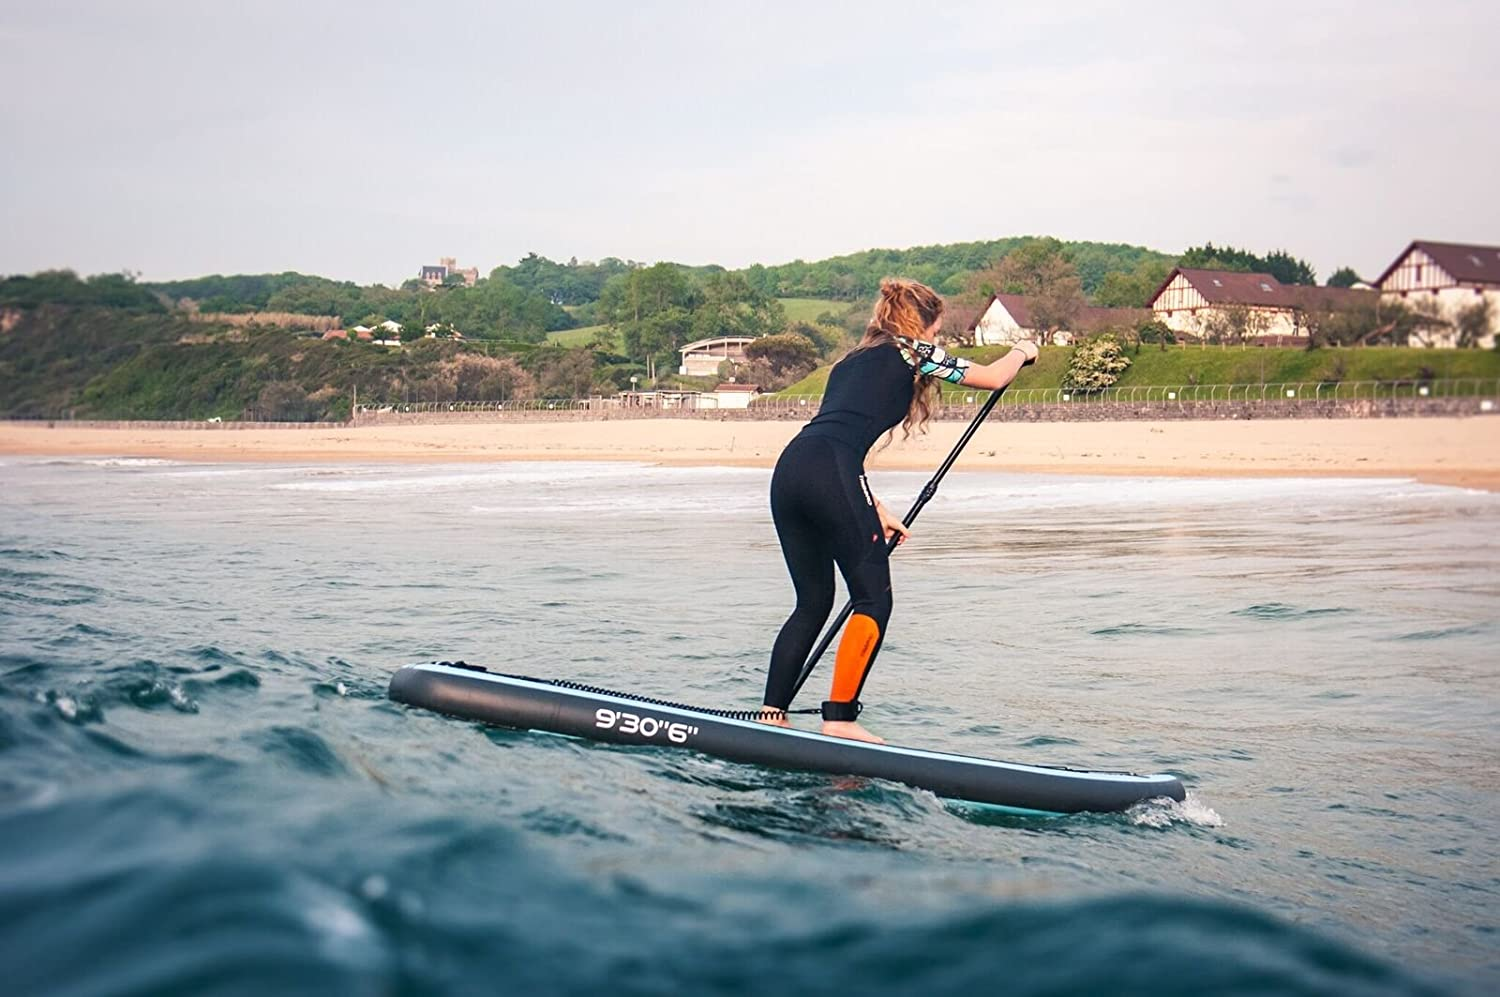 KAIA Pack Stand Up Paddle hinchable 9 0: Amazon.es: Deportes y aire libre